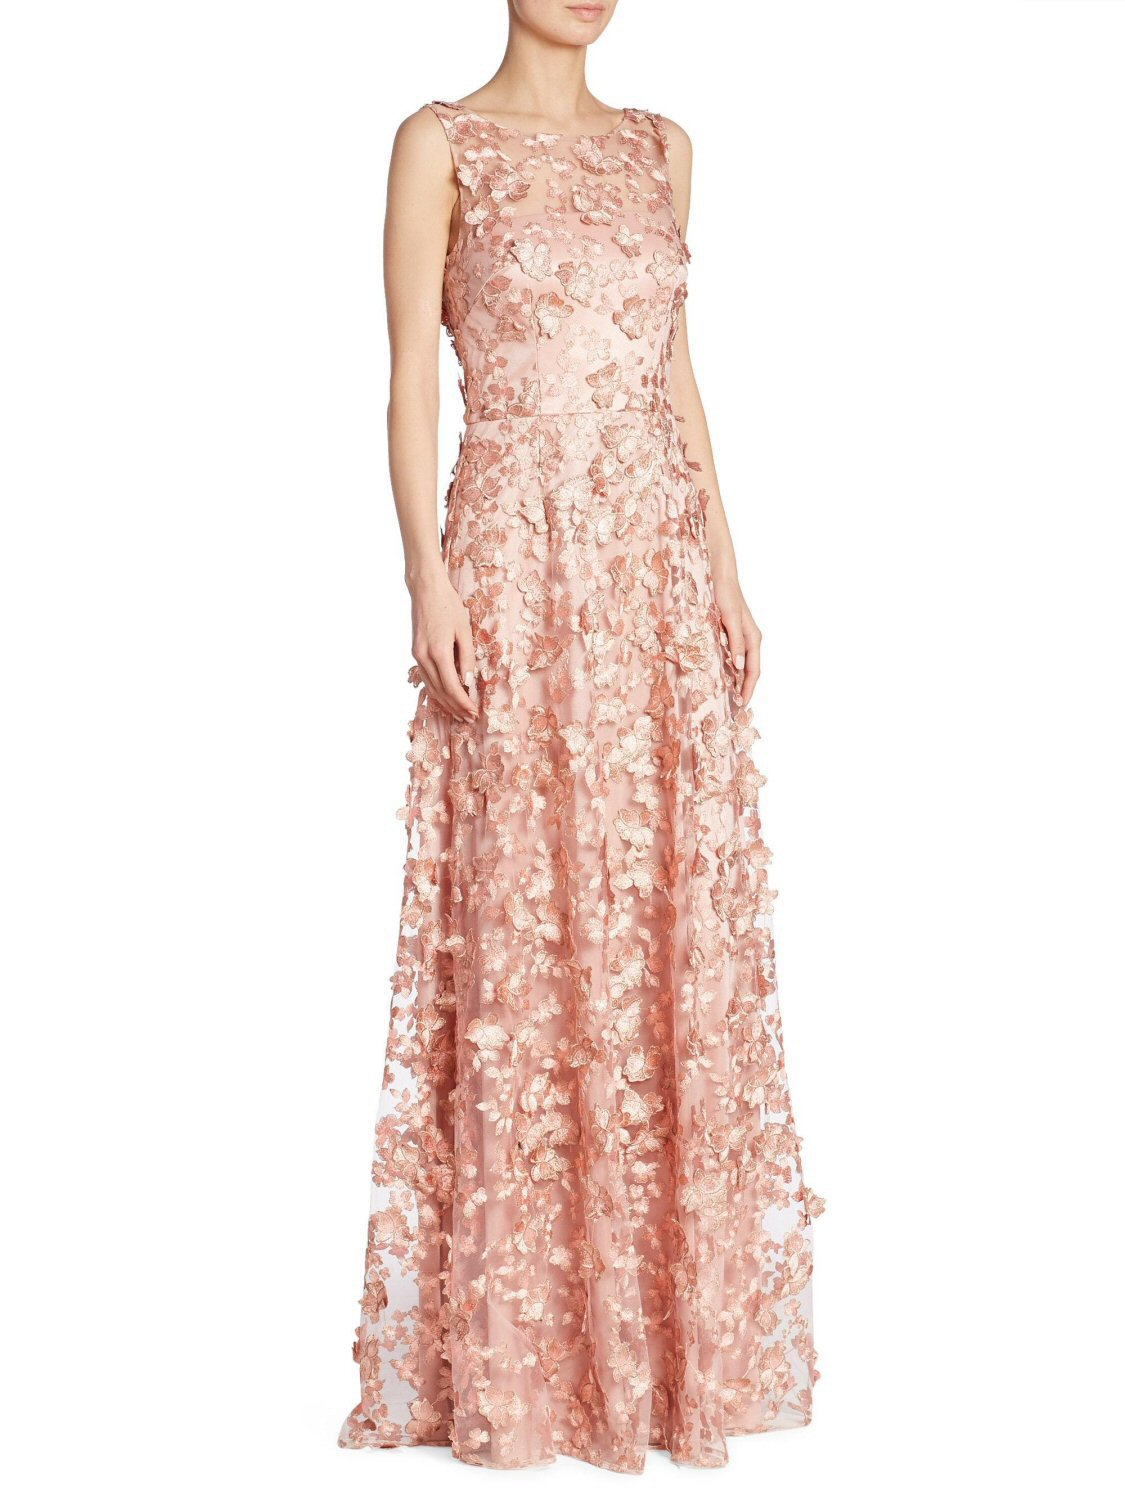 David Meister Pink Sleeveless 3d Floral Tulle Evening Gown Dress 16 ...